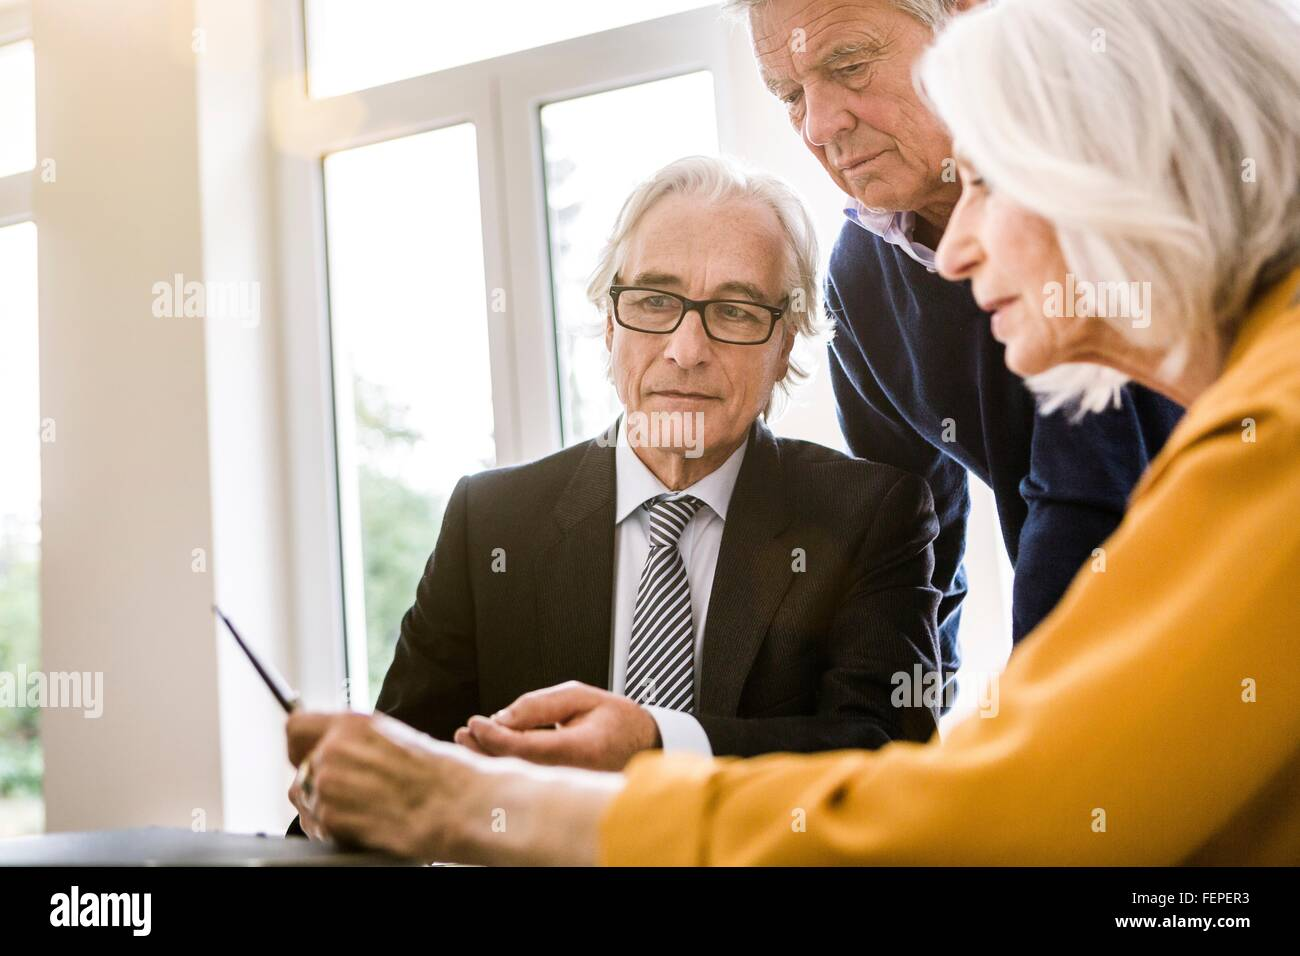 Senior adults in business meeting discussing paperwork - Stock Image